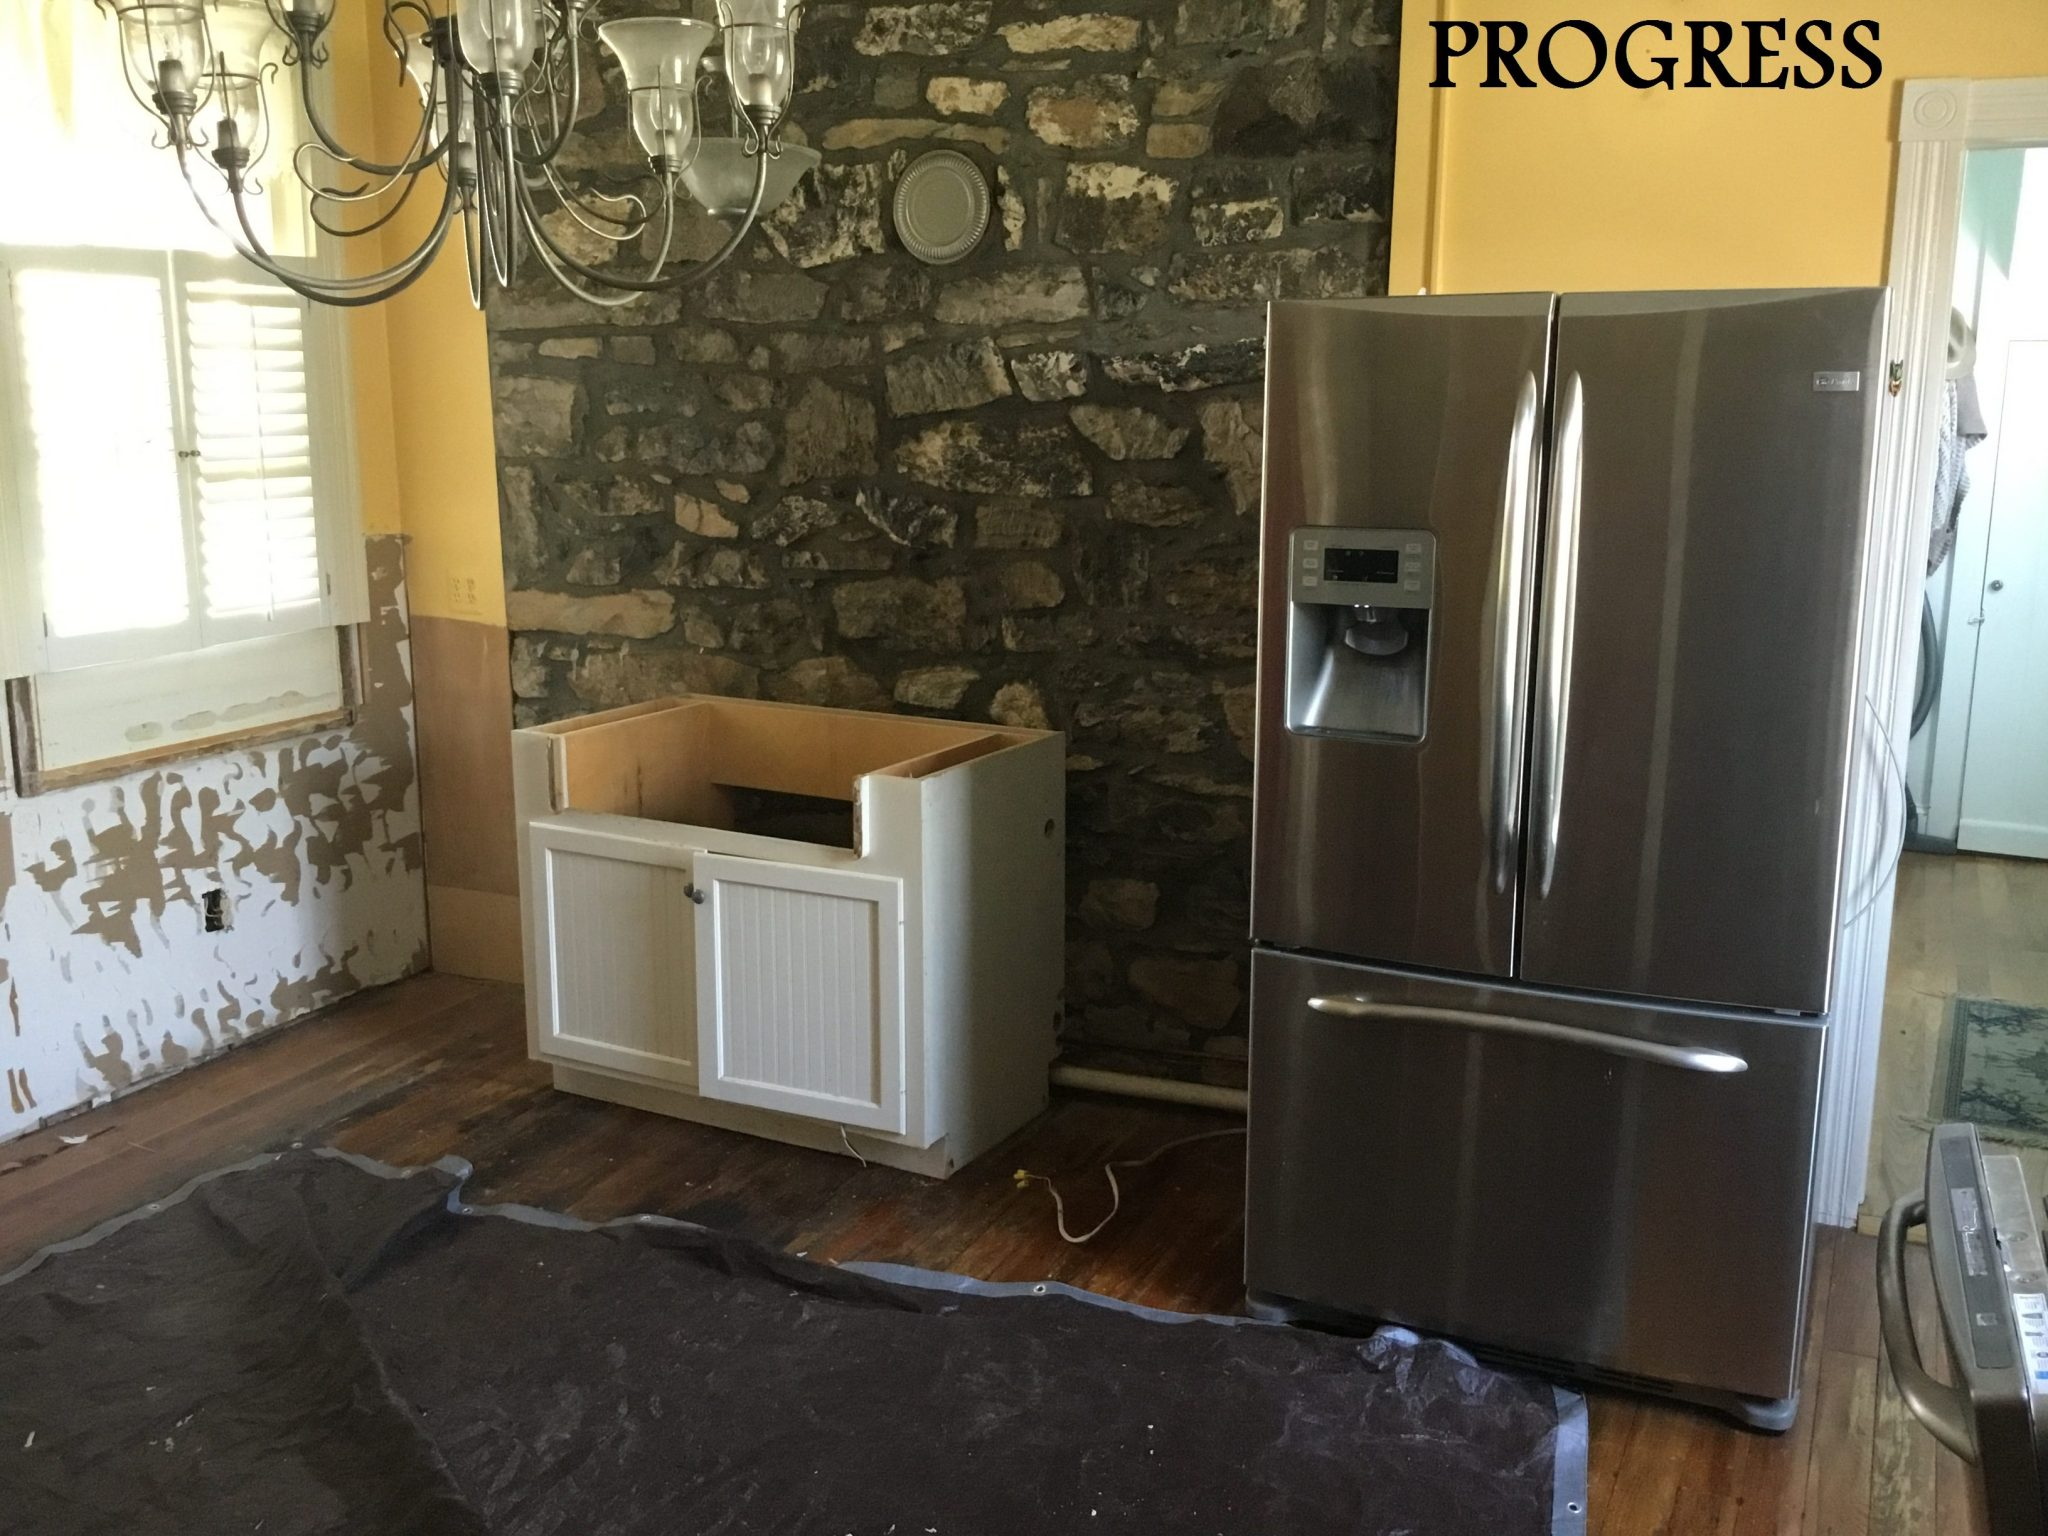 Historic Kitchen Renovation And Accommodation progress